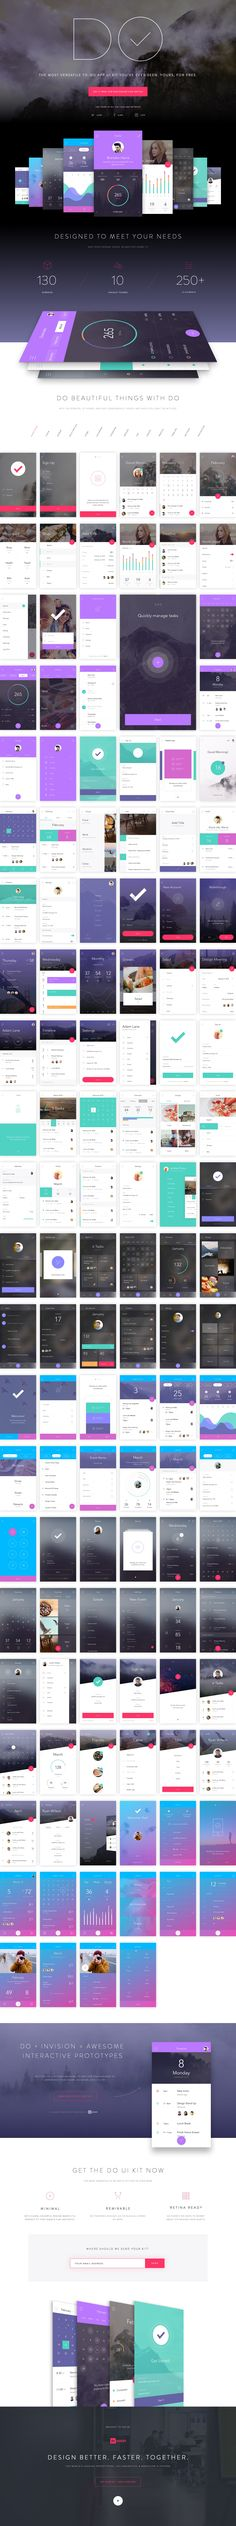 Loves Data Loves || Get DO UI Kit for Photoshop & Sketch by Anton Aheichanka | #UI #userinterface #app 어플에 관련된 gui이다. 어플 디자인을 할때 많이 도움이 될것같다.